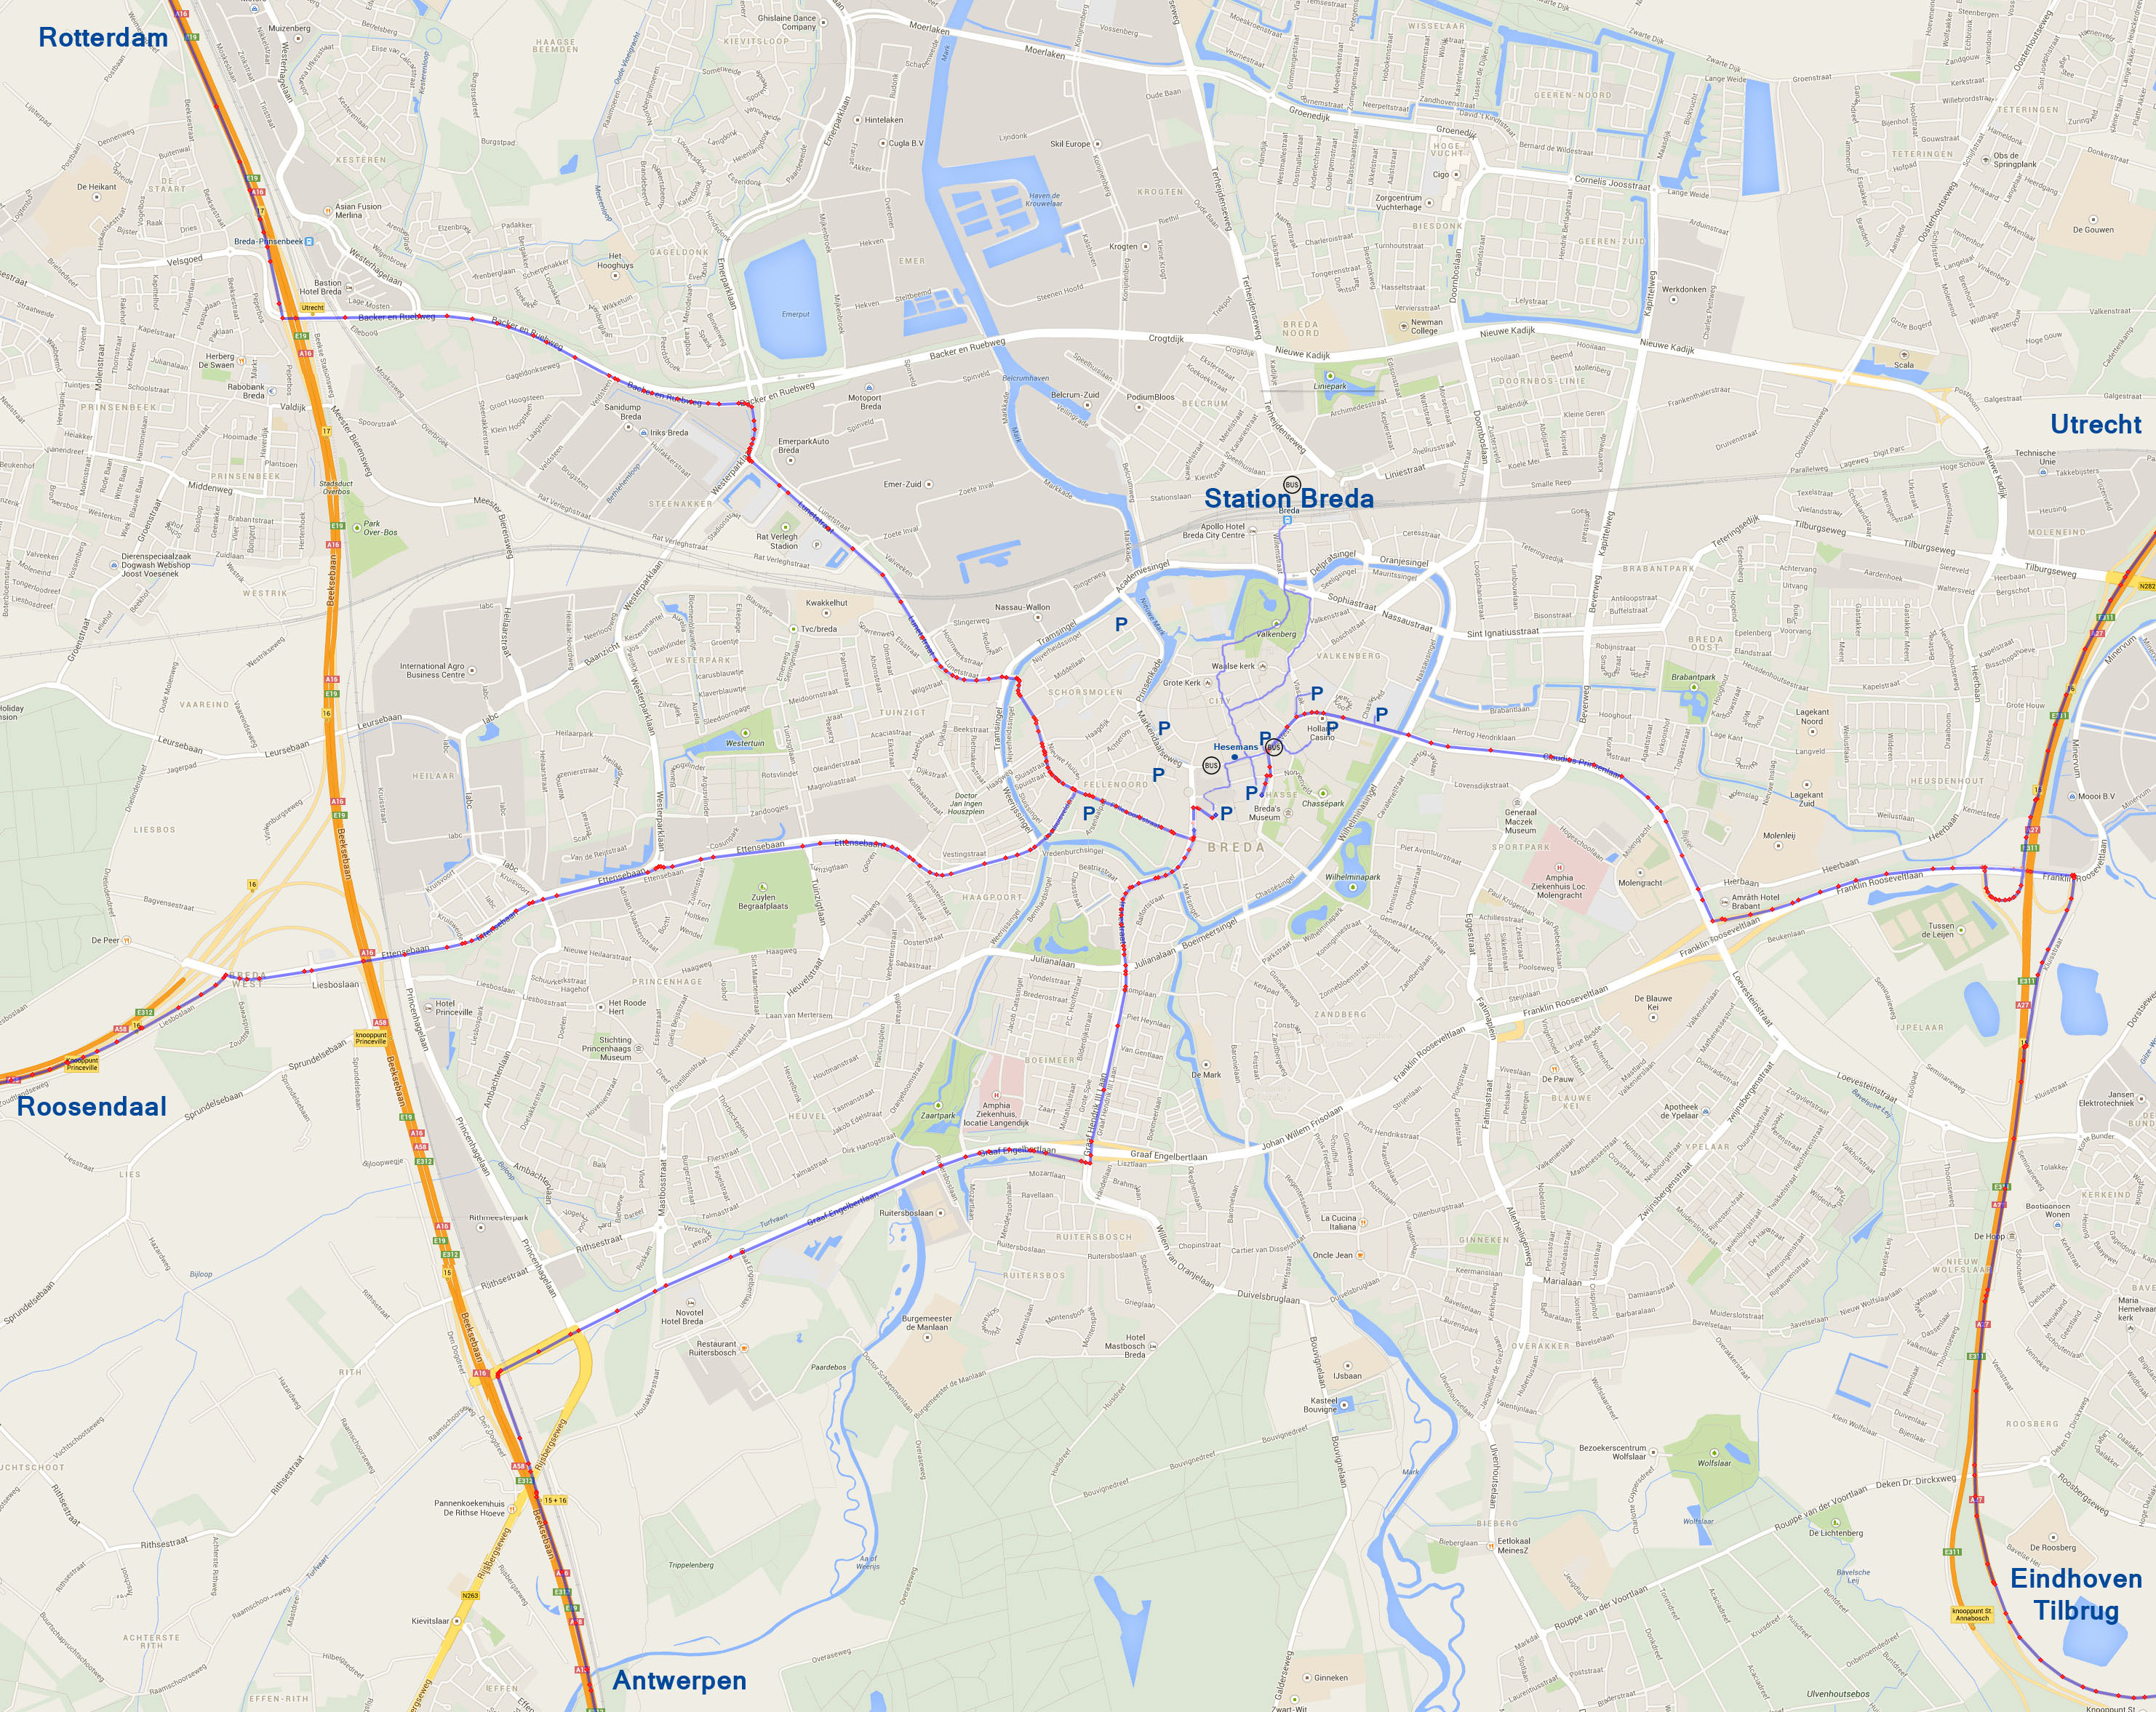 route_hesemans_kaart_met_namen_1